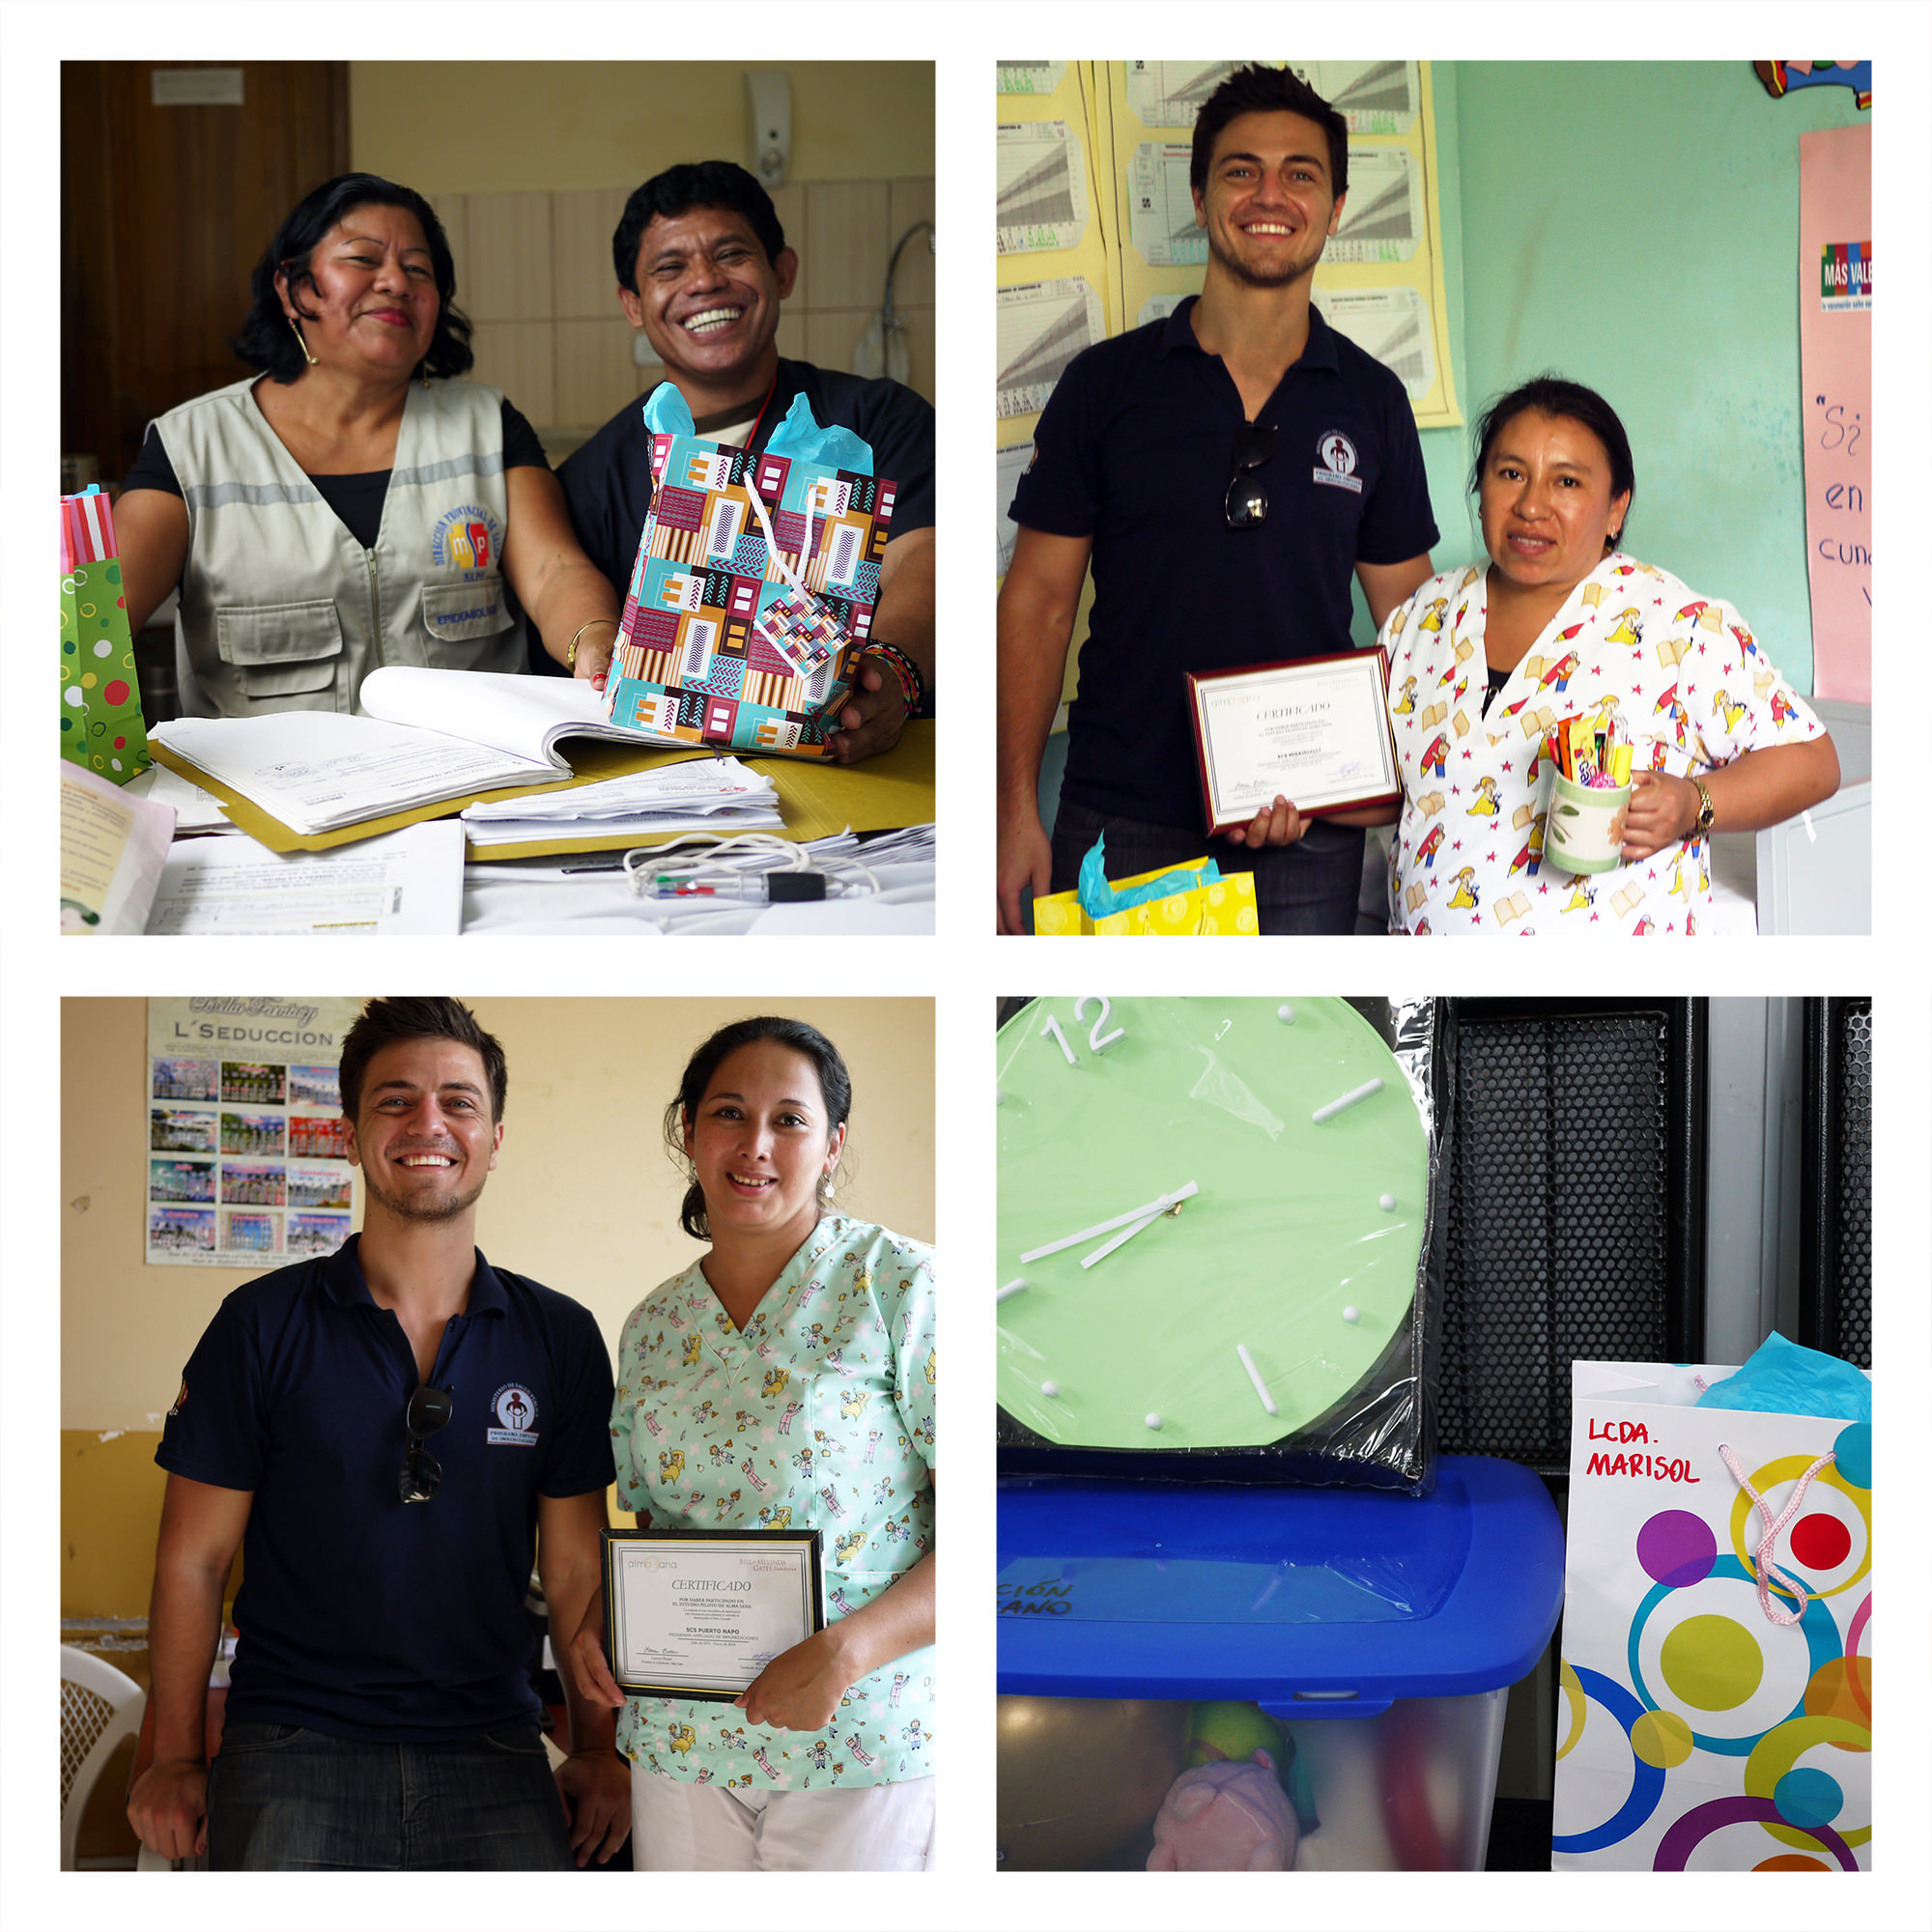 """Alma Sana is done in Ecuador! Here are some photos of Alex, our Ecuador Project Coordinator, giving thank-you presents to our study's nurses during his last clinic visits. Here is what he had to say about his final days in Tena:  """"It's hard to believe, but we're done in the field. Eight months flew by! I've felt spoiled since day one, getting to work with fantastic people like Marisol, Nancy, Fernanda, Johnson, Estefanía, and all of our other Ministry of Health partners. They work as hard as can be, and they do it with a smile. This project wouldn't have been possible without the people you see here, and I'll miss them terribly when I go.  As we debriefed — going over statistics and laughing as we exchanged our last stories — our nurses gave helpful feedback about how Alma Sana can improve and urged us to come back soon.  'These bracelets are really important,' one nurse said. 'They're easy to use, mothers loved them, and they can help us improve vaccination. It's been a pleasure to work with you, we'll miss you, and we hope you come back soon! We'll be looking forward to it.'  As will we! Muchísimas gracias a todos for a fantastic job well done. Hope to see you again soon!"""" Photo posted: January 30, 2014"""